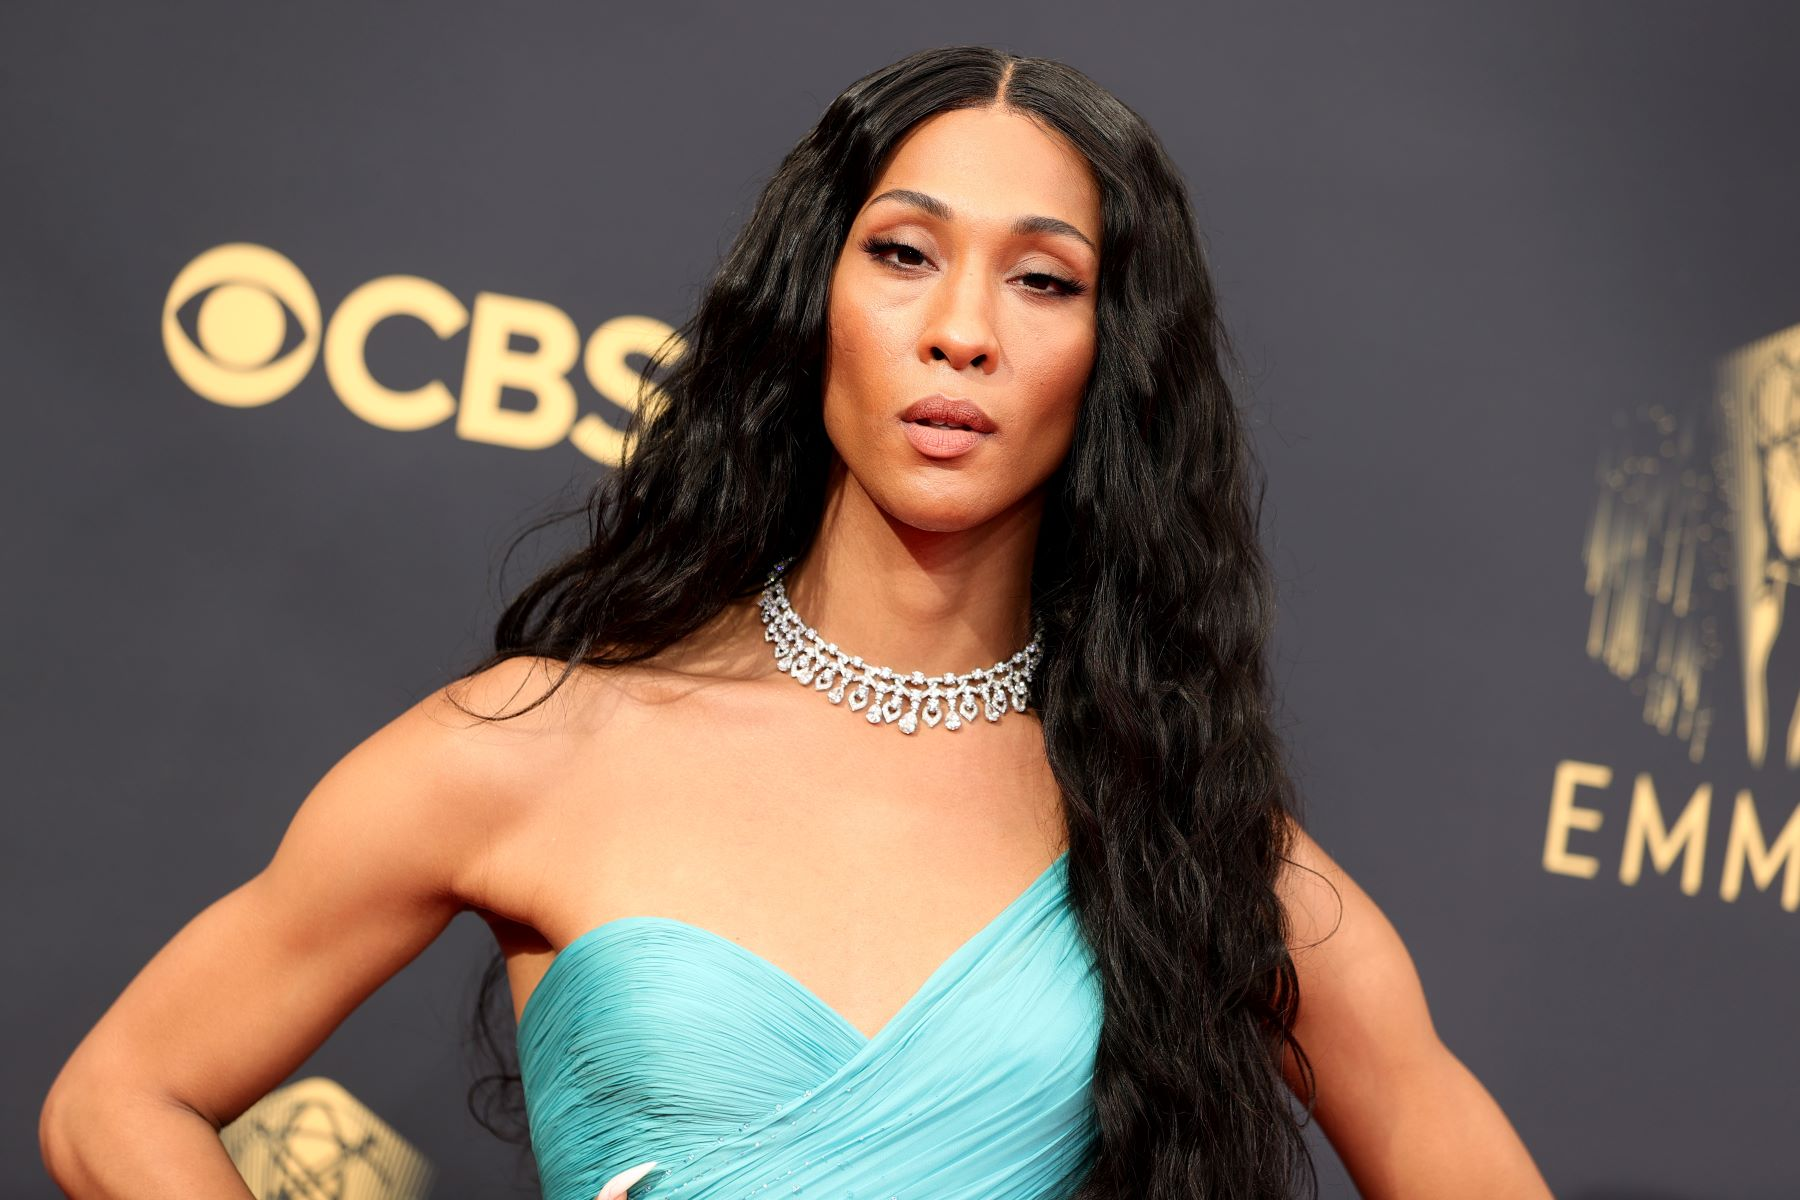 Mj Rodriguez attending the 73rd Primetime Emmy Awards in Los Angeles, California